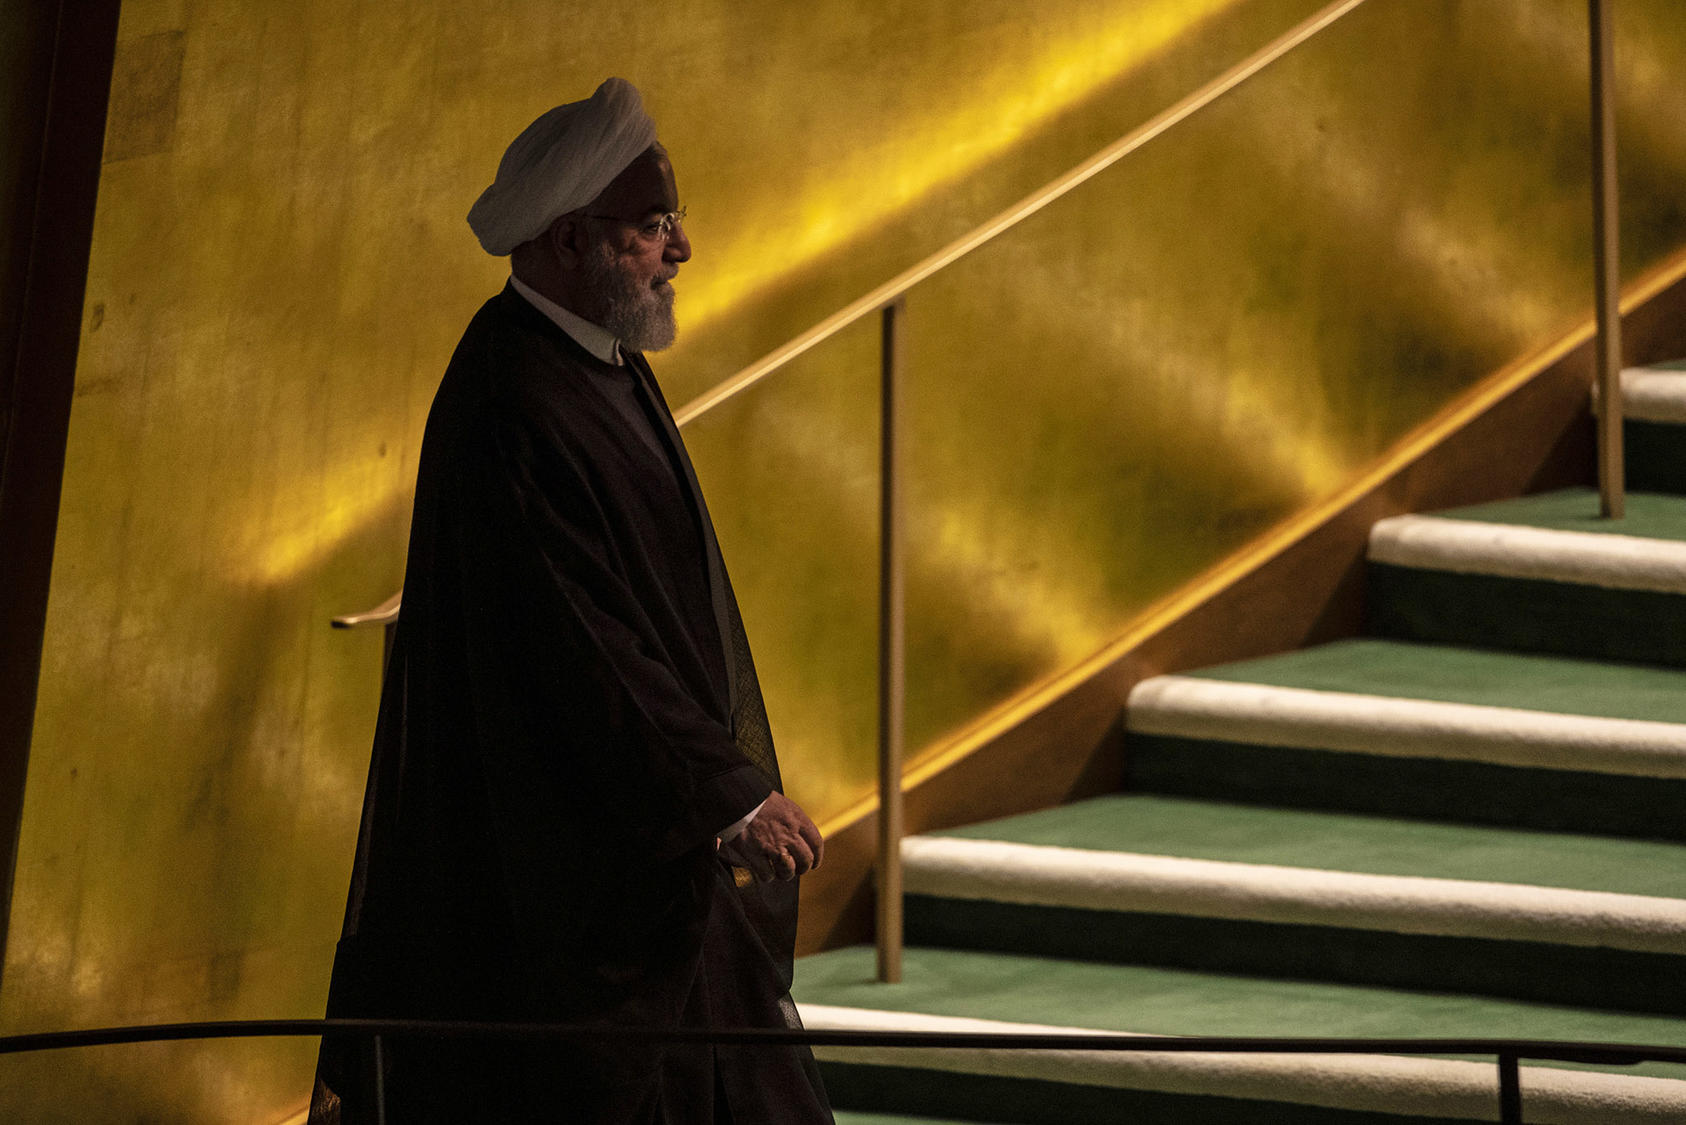 President Hassan Rouhani of Iran has a vested interest in reviving diplomacy but has limited time to engage the Biden administration with elections in Iran slated for June. (Brittainy Newman/The New York Times)